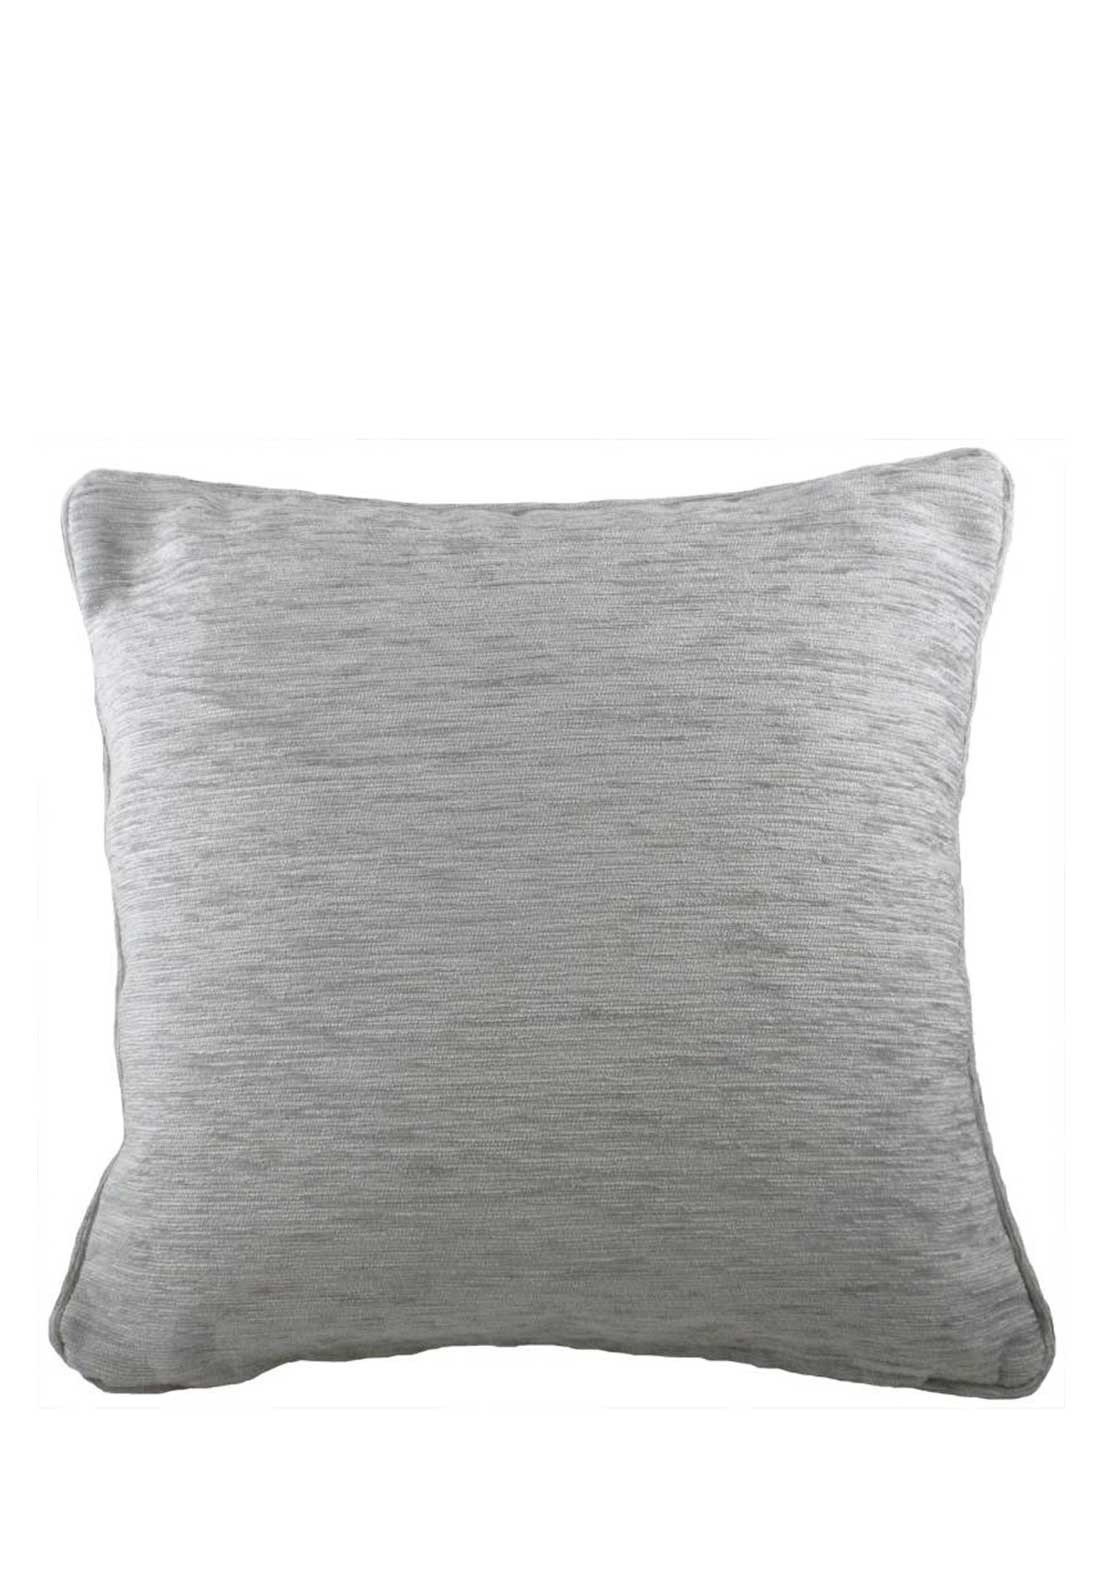 Savannah Chenille Cushion, 43 x 43cm, Grey